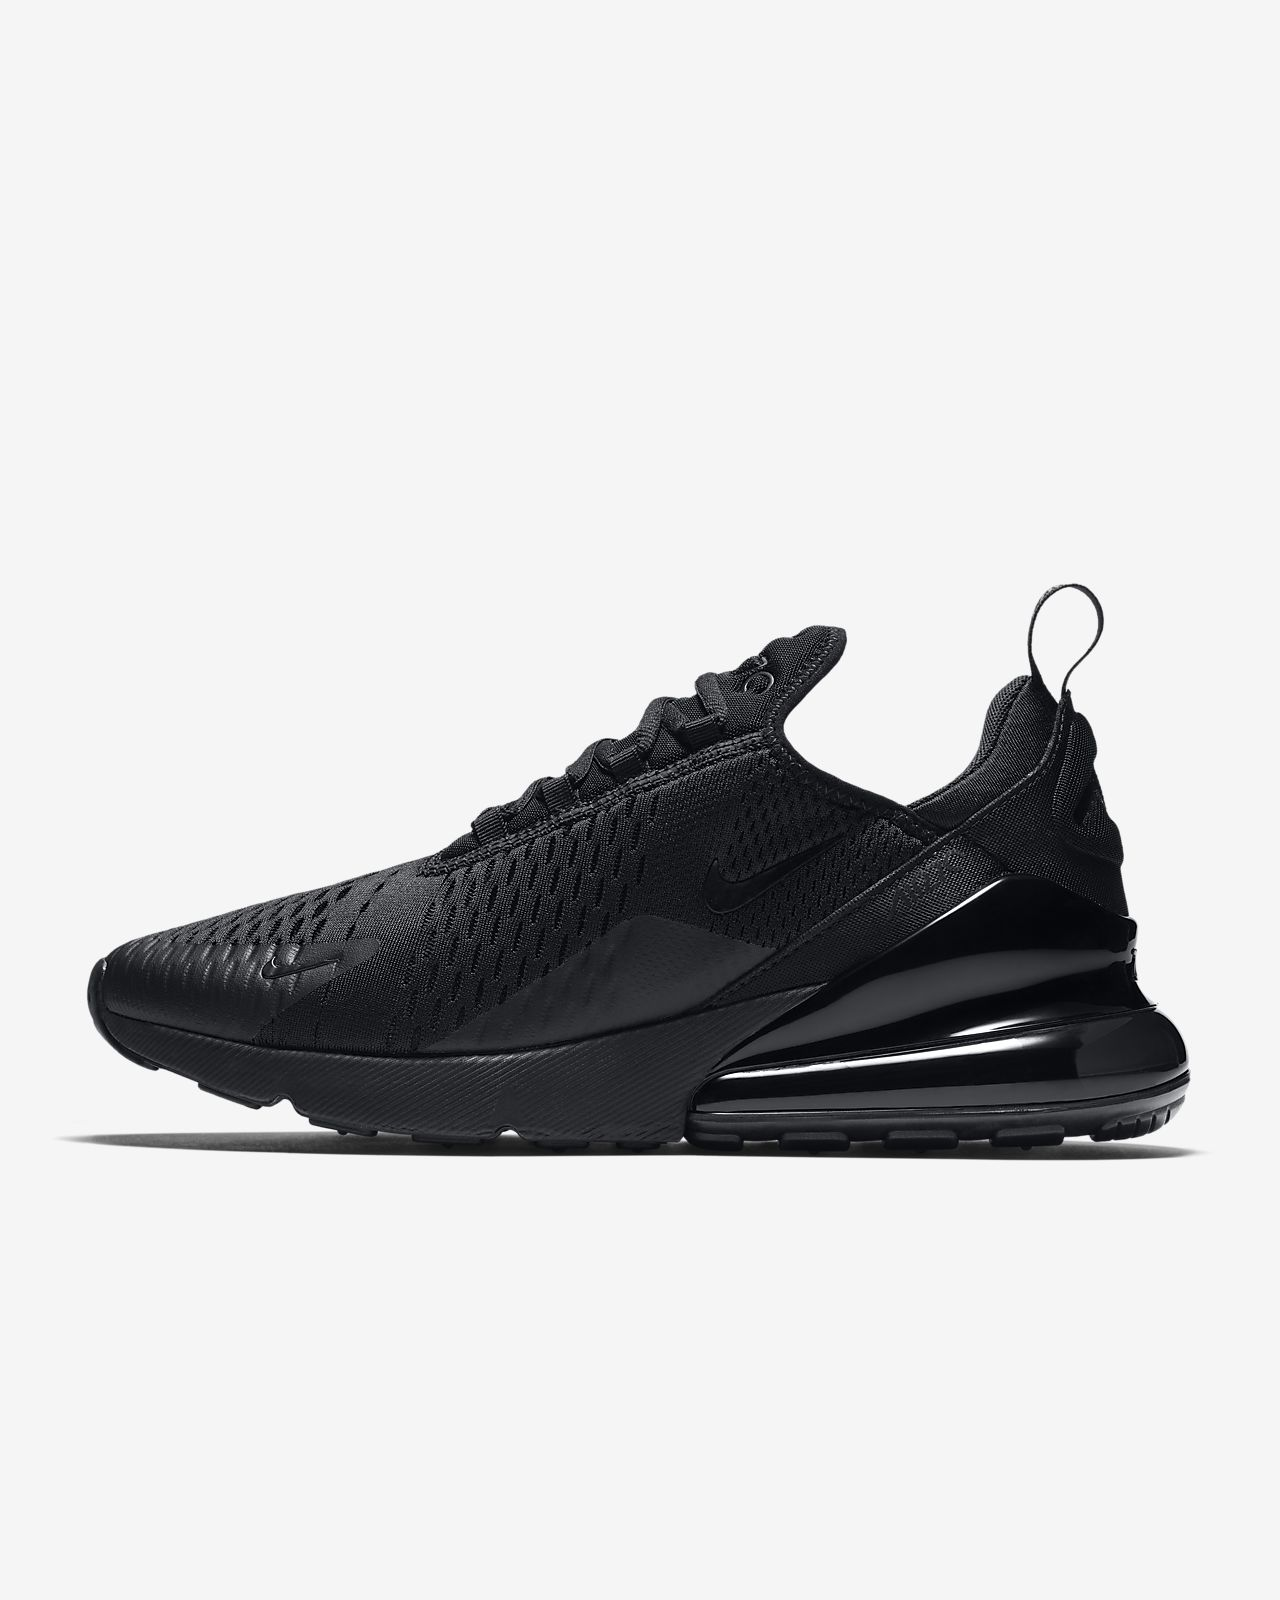 587c920913c11 Nike Air Max 270 Men s Shoe. Nike.com CA